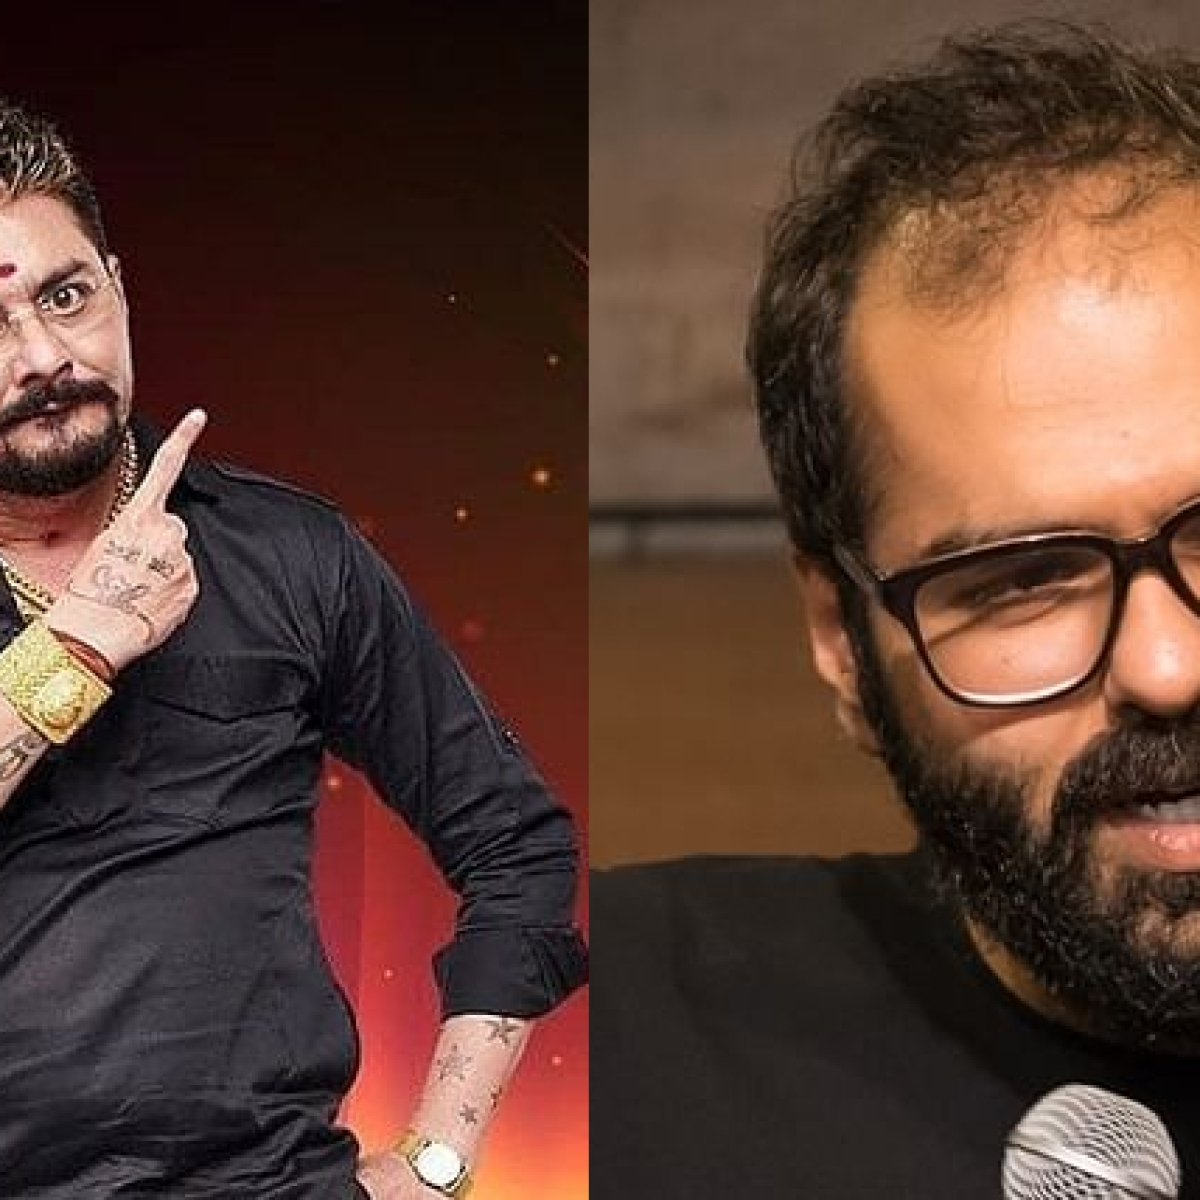 Kunal Kamra urges Mumbai Police to take action against Hindustani Bhau's 'mob building and hate spreading' video